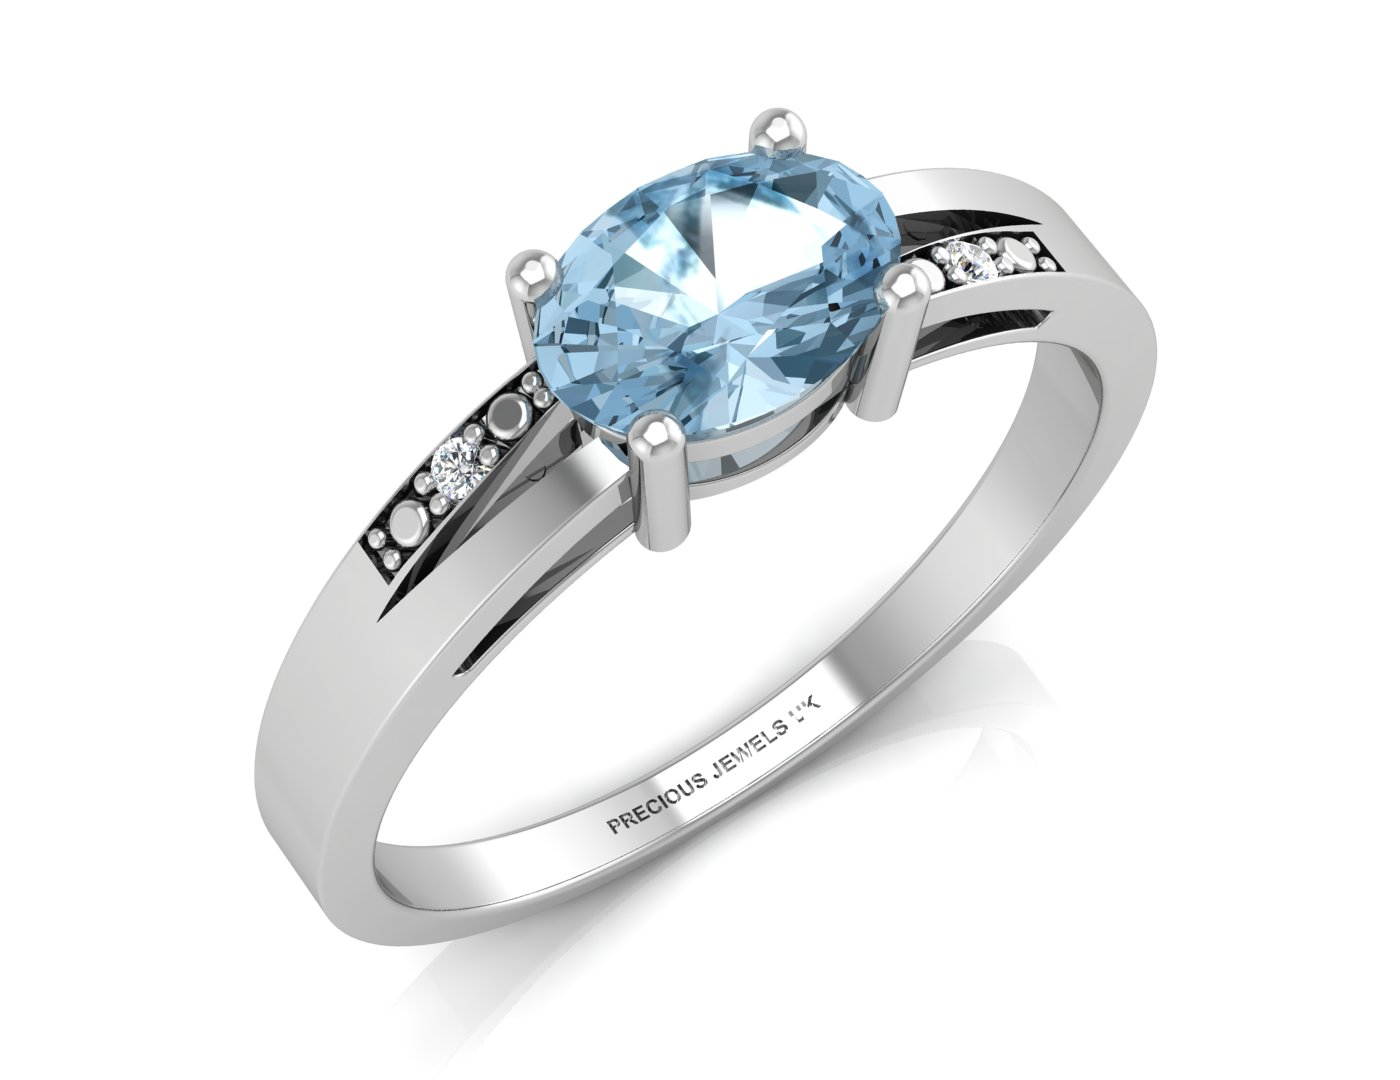 Lot 57 - 9ct White Gold Diamond And Blue Topaz Ring